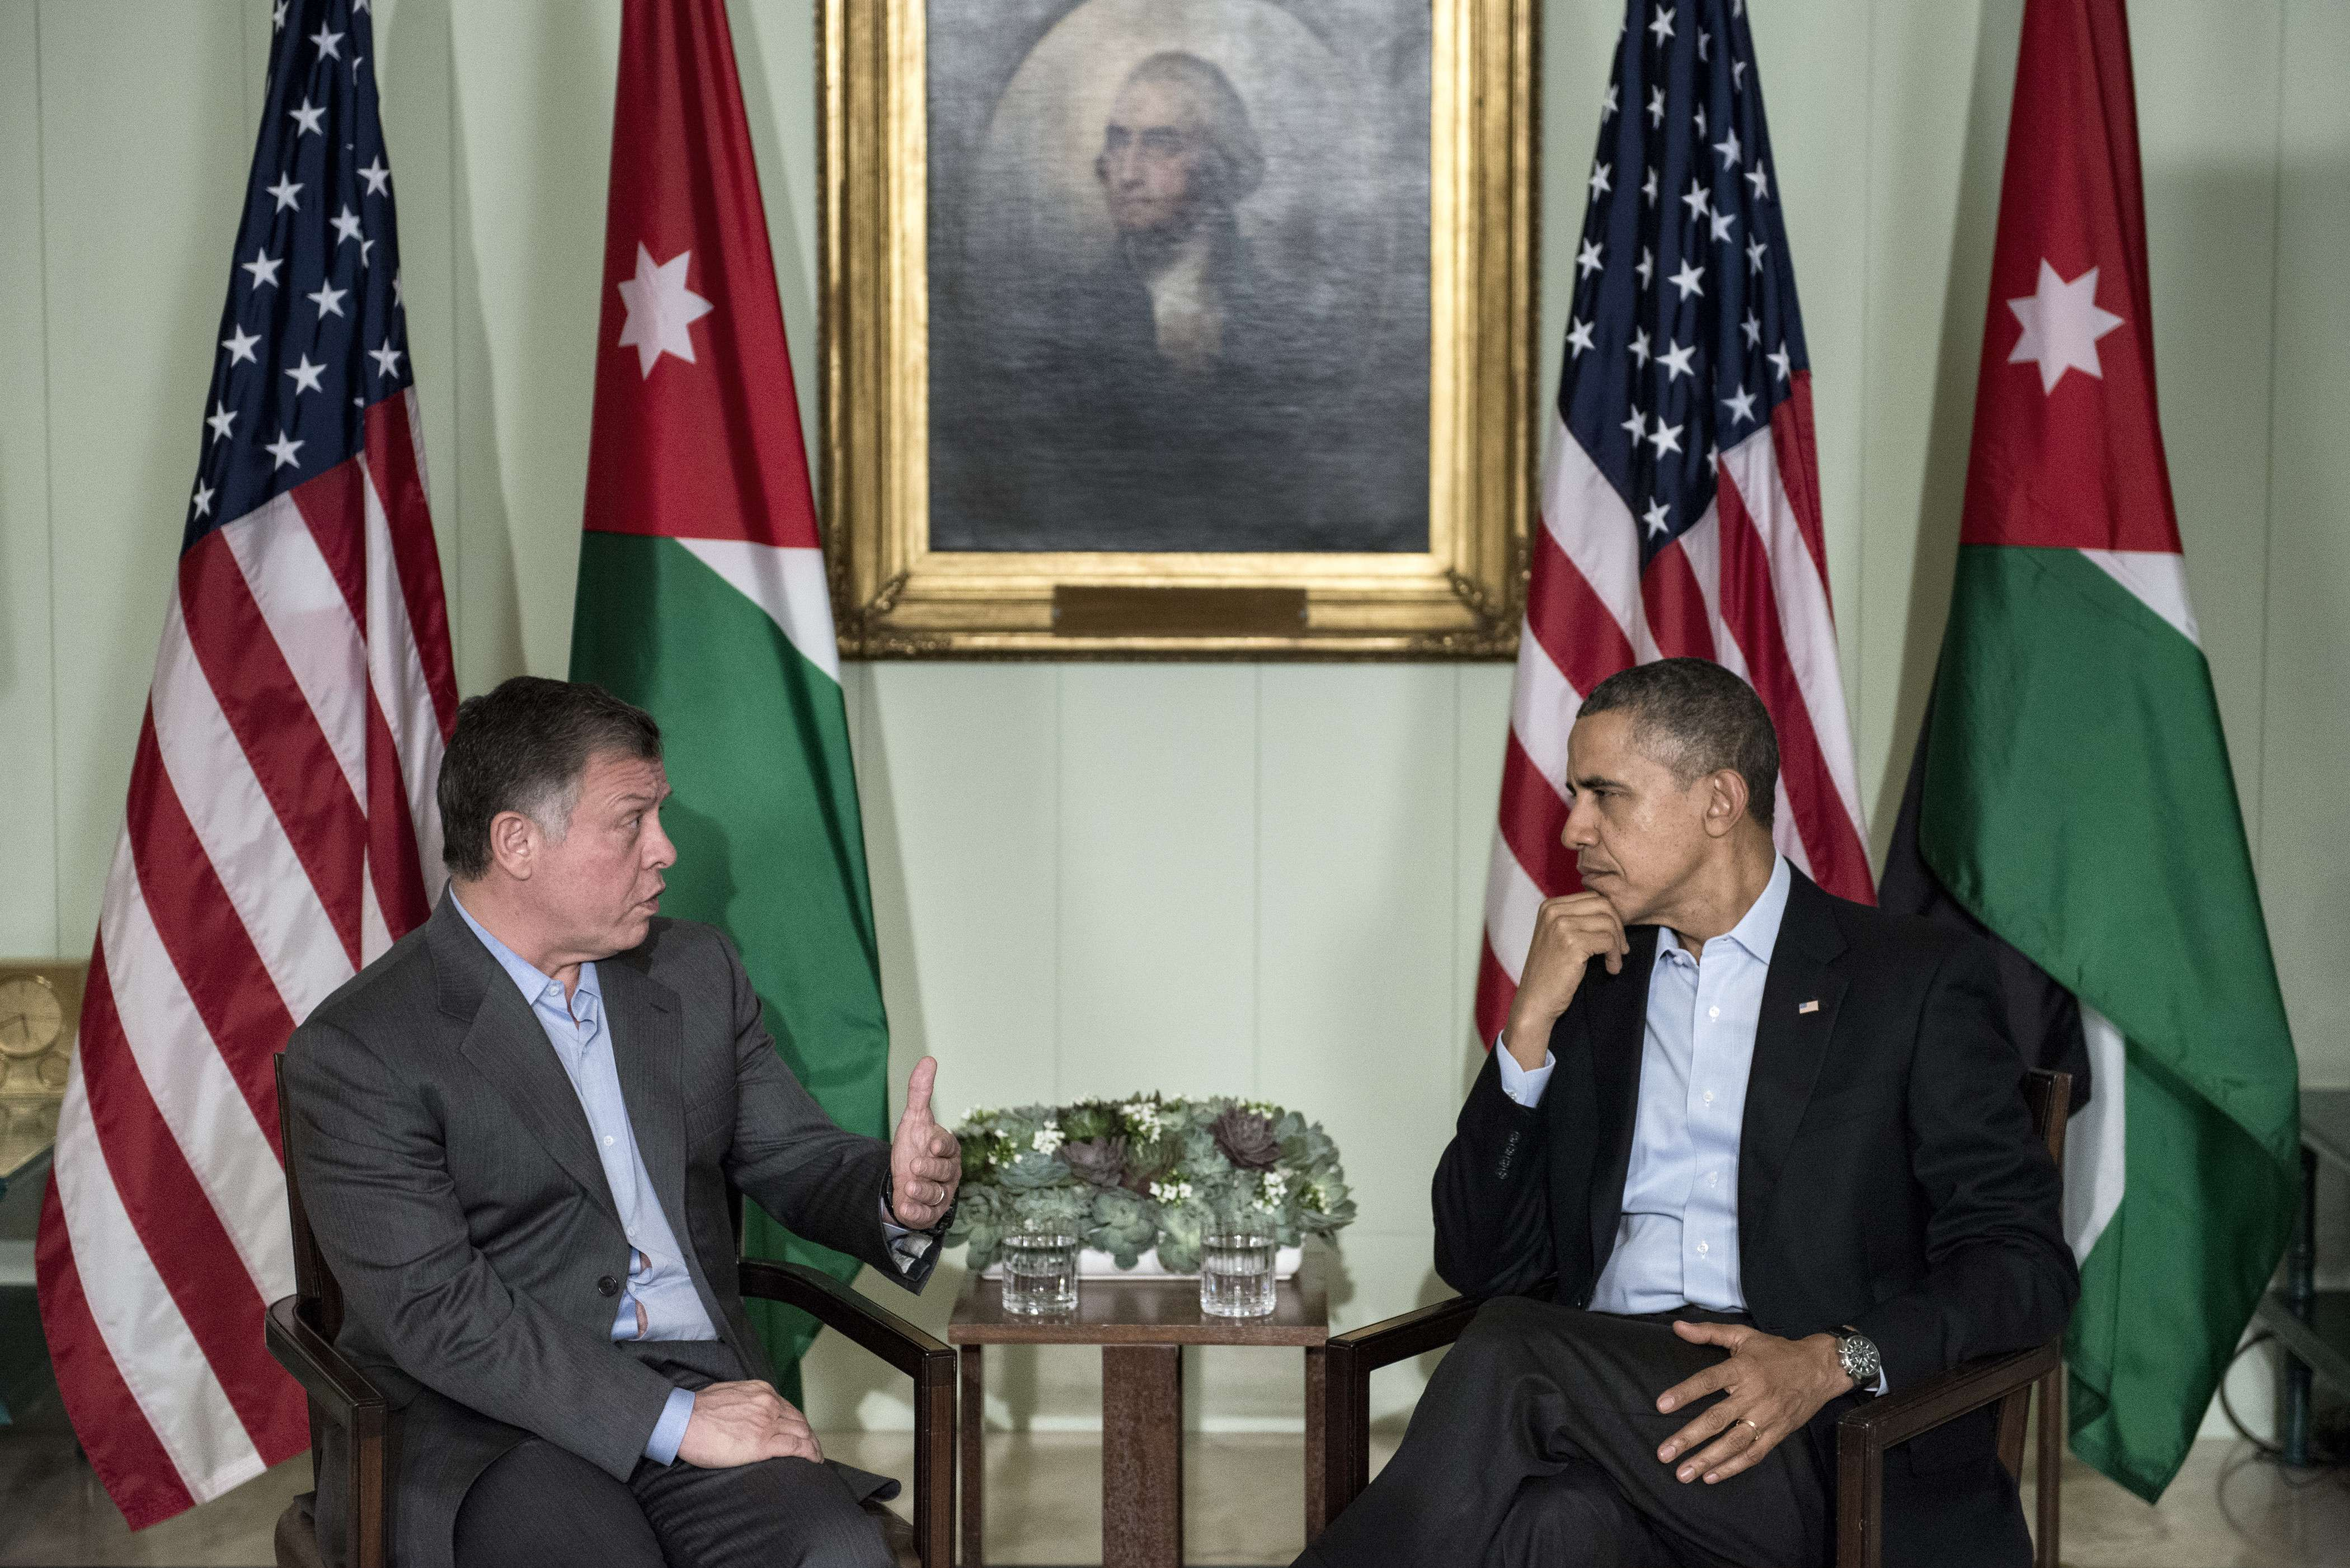 US President Barack Obama (R) listens while King Abdullah II of Jordan makes a statement for the press before a meeting at The Annenberg Retreat at Sunnylands February 14, 2014 in Rancho Mirage, California. Obama will meet with King Abdullah II of Jordan while visiting California for the weekend.  (AFP PHOTO/Brendan SMIALOWSKI)